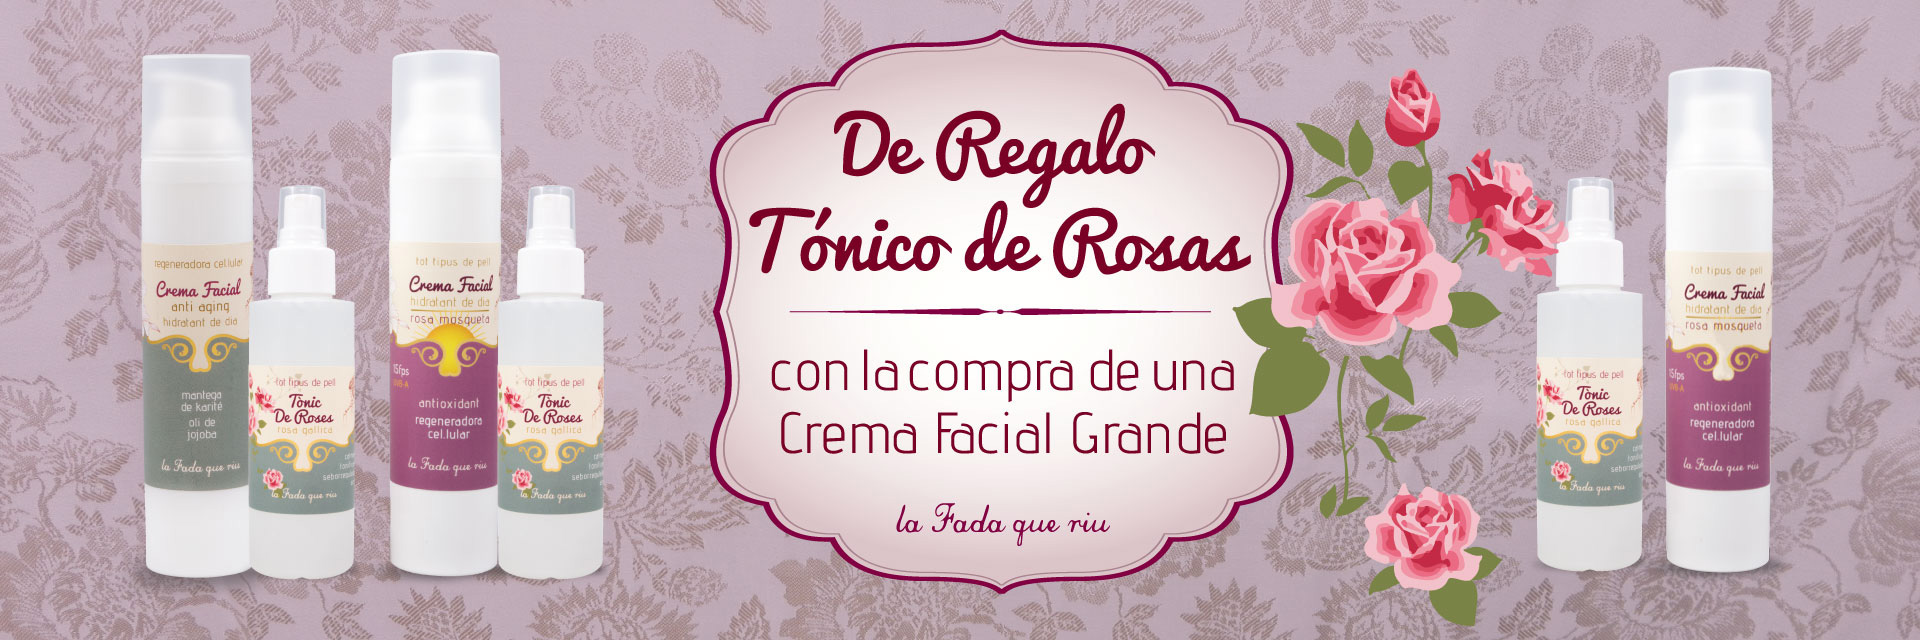 9788170slider-tonic-regal-es